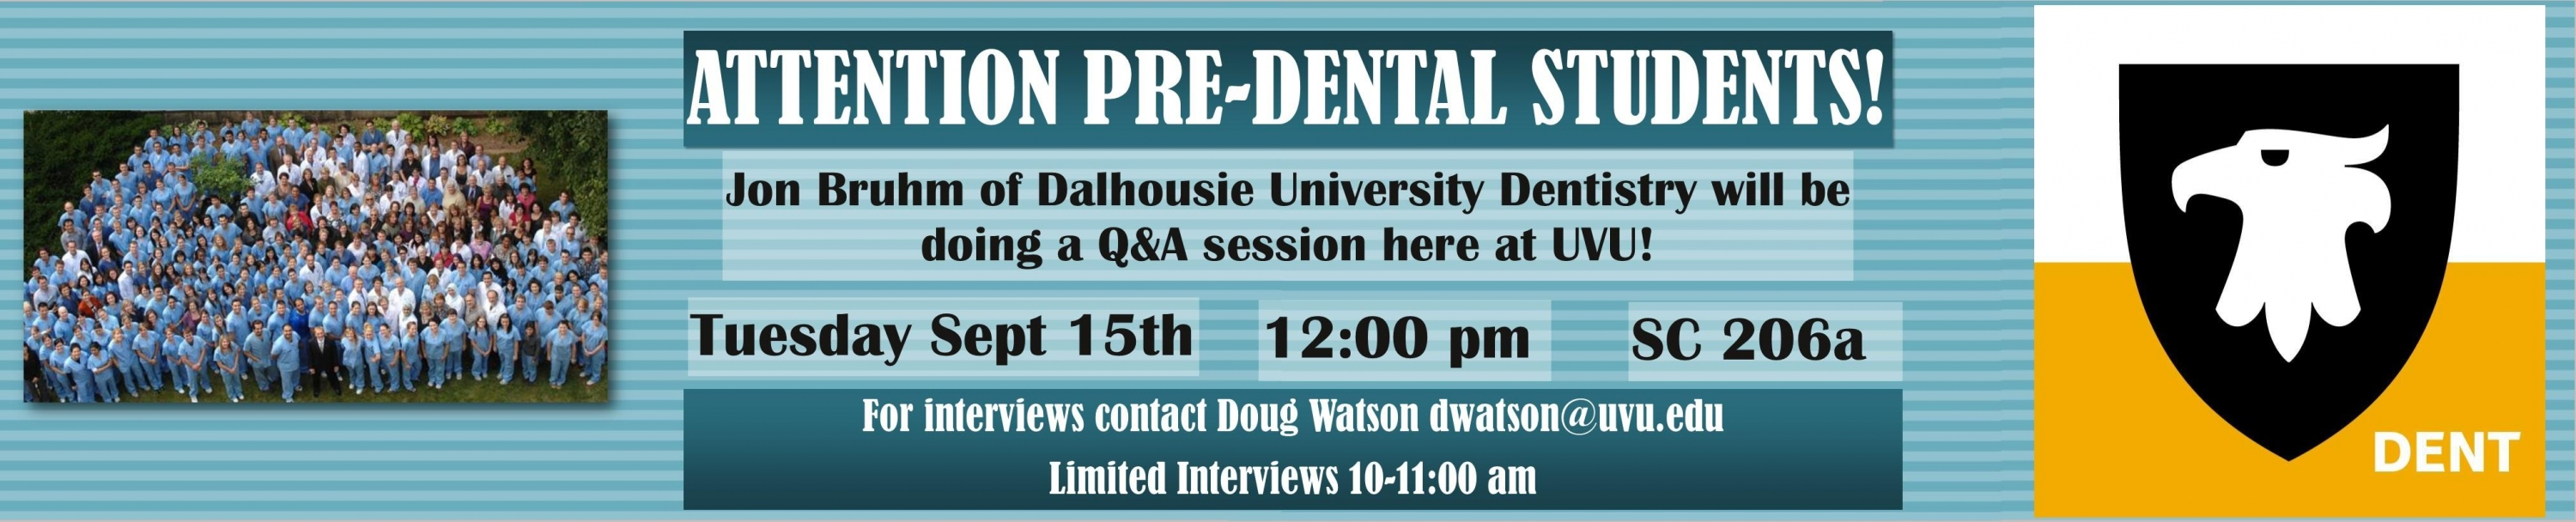 Dalhousie University Dentistry